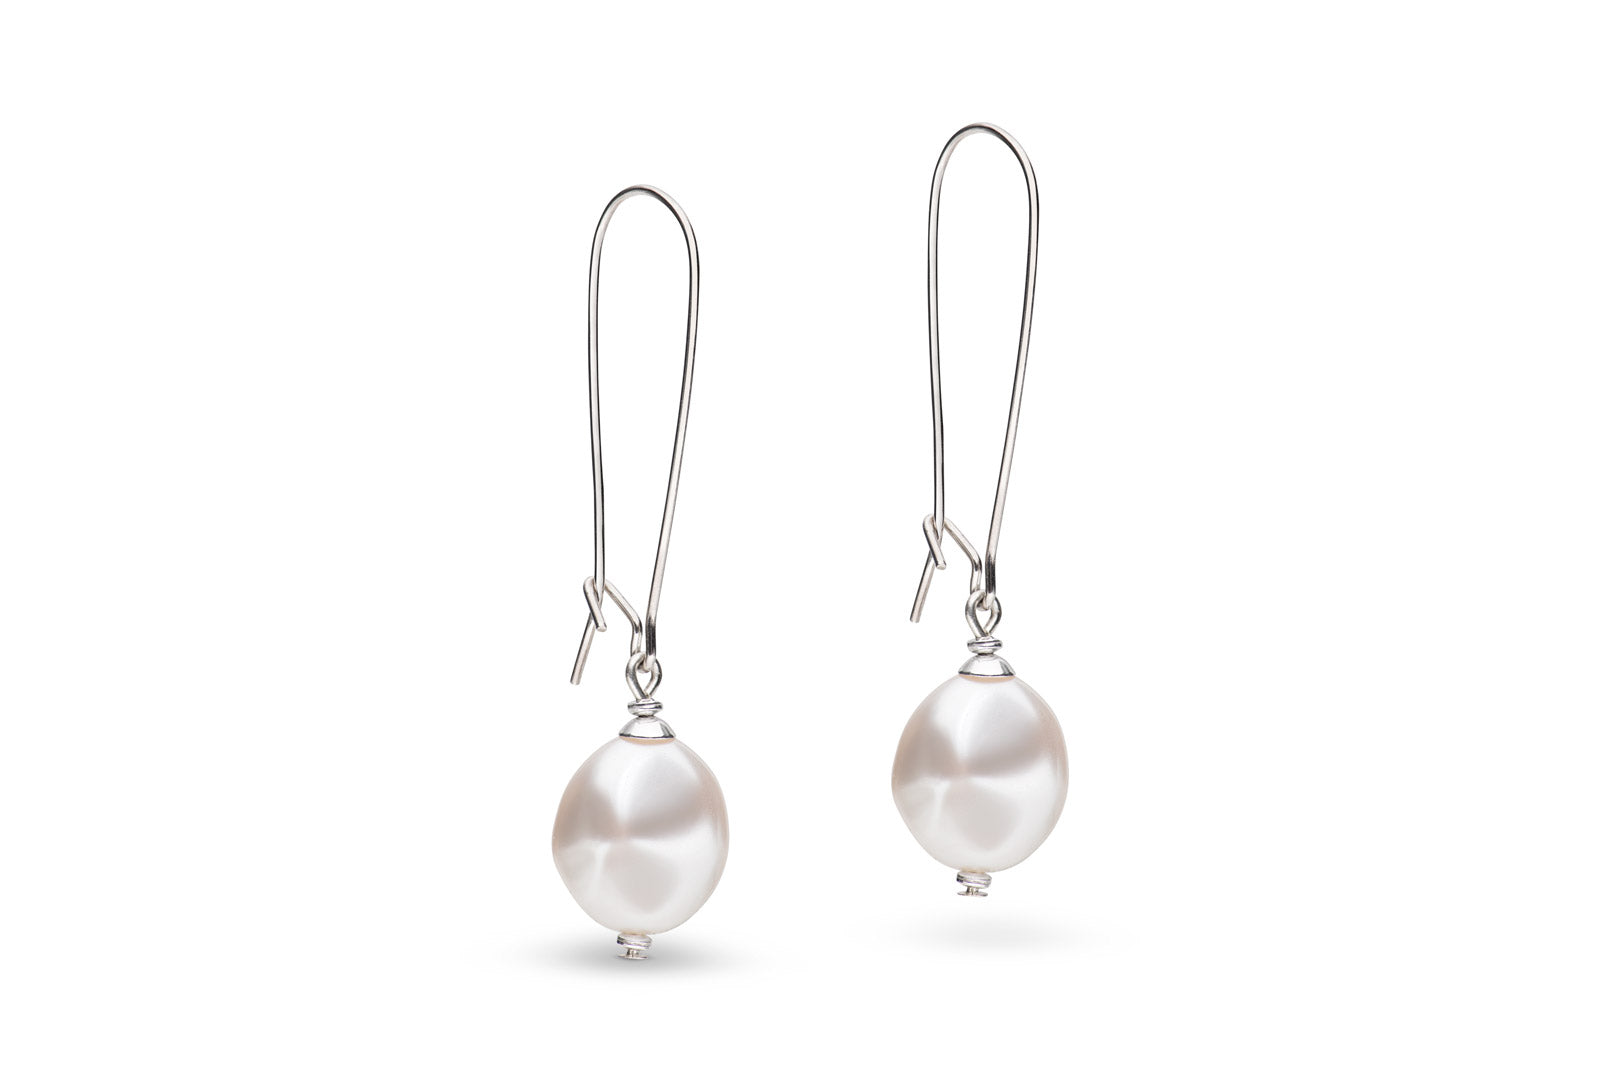 Silver and baroque pearl earrings